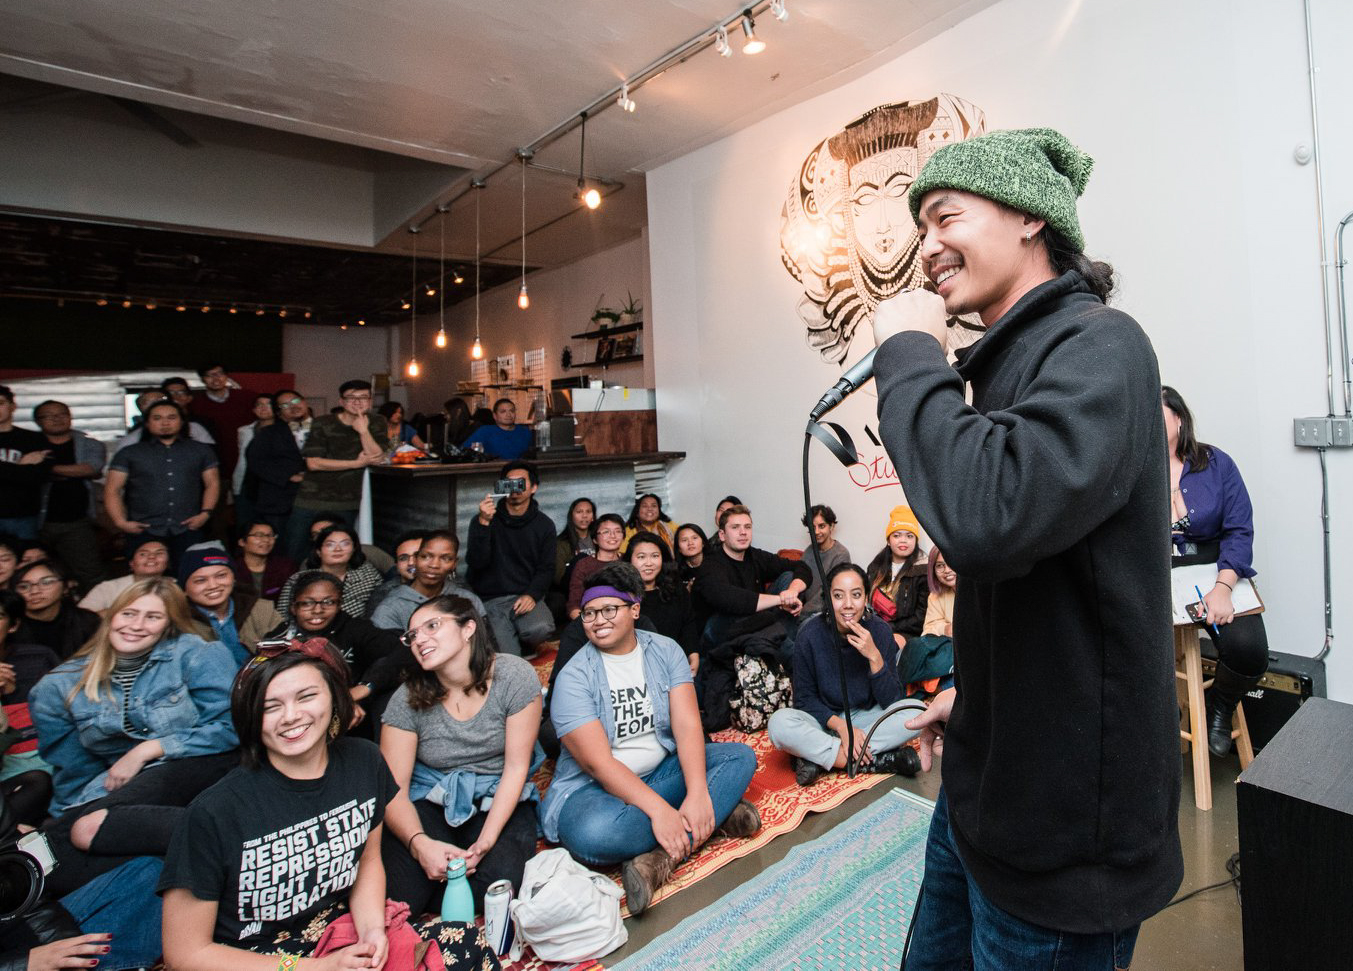 Organized by multidisciplinary artists from the Chicago Filipinx community, Luya is a monthly open mic series for artists of color and their friends. (Courtesy Kayla Delson)